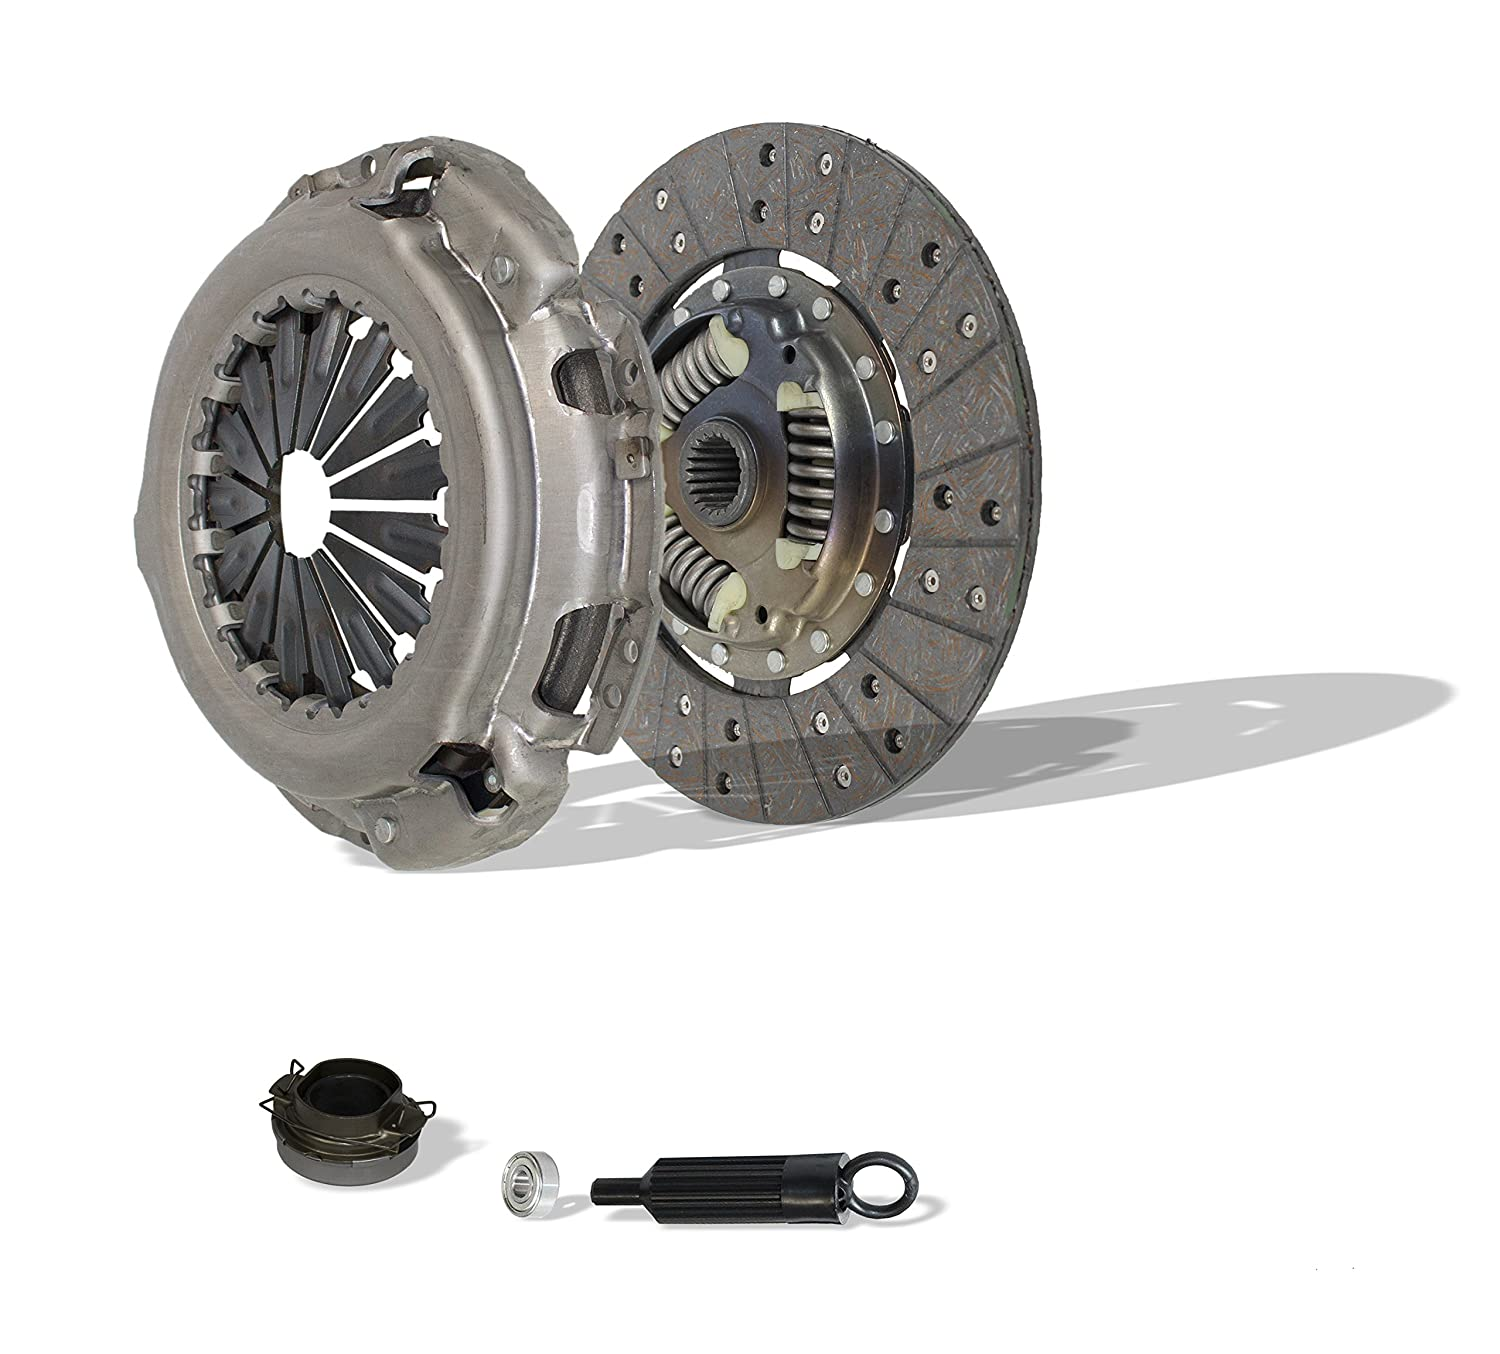 Clutch Kit Works With Toyota Tacoma Base Pre Runner SR5 One-Ton Extended Standard Cab Pickup 2.7L l4 GAS DOHC 3.0L V6 GAS SOHC Naturally Aspirated 4Wd